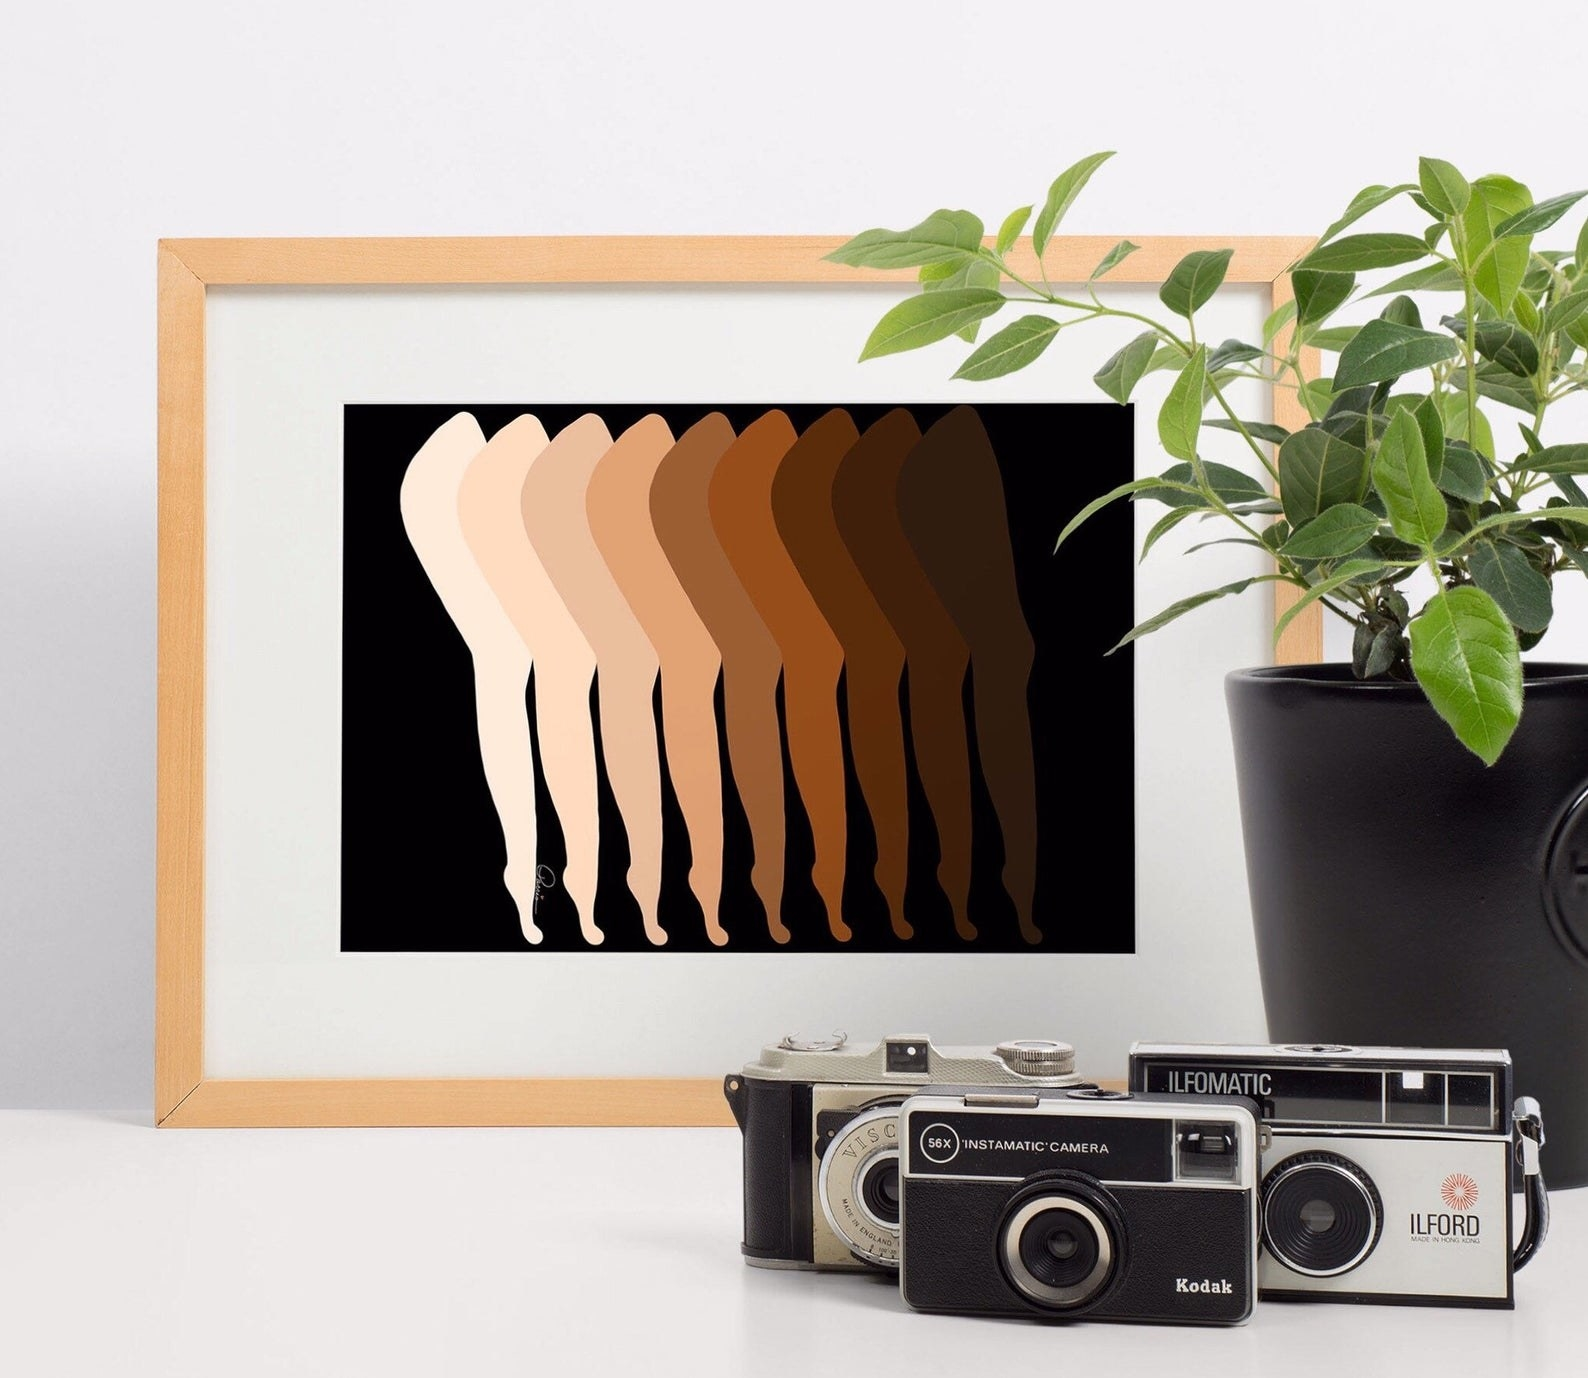 A minimalist drawing of legs layered over each other in different skin tones